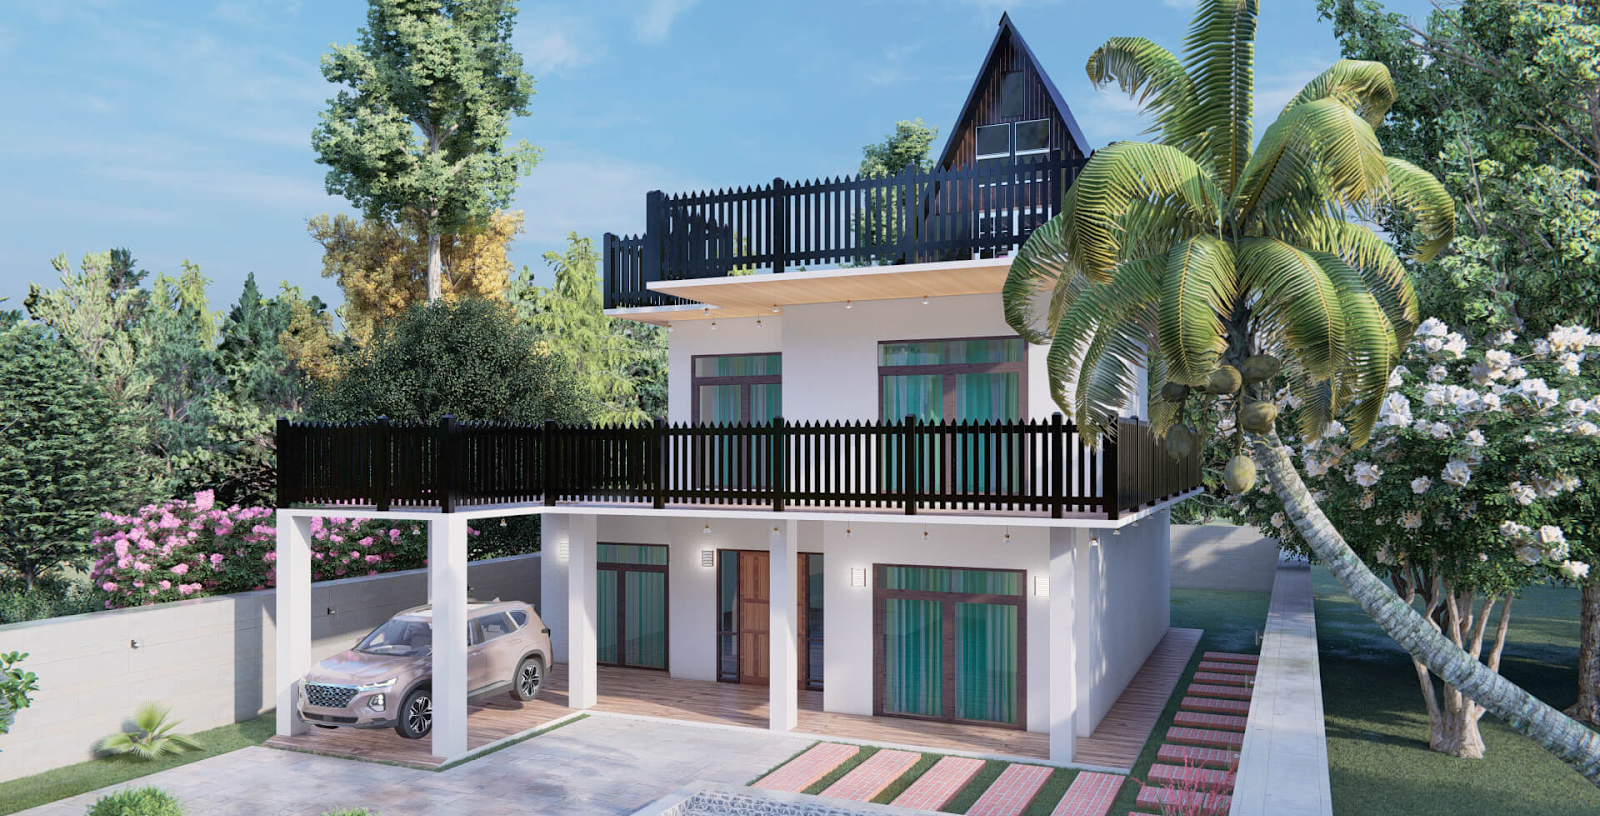 What-are-beautiful-exterior-rendering-ideas-18